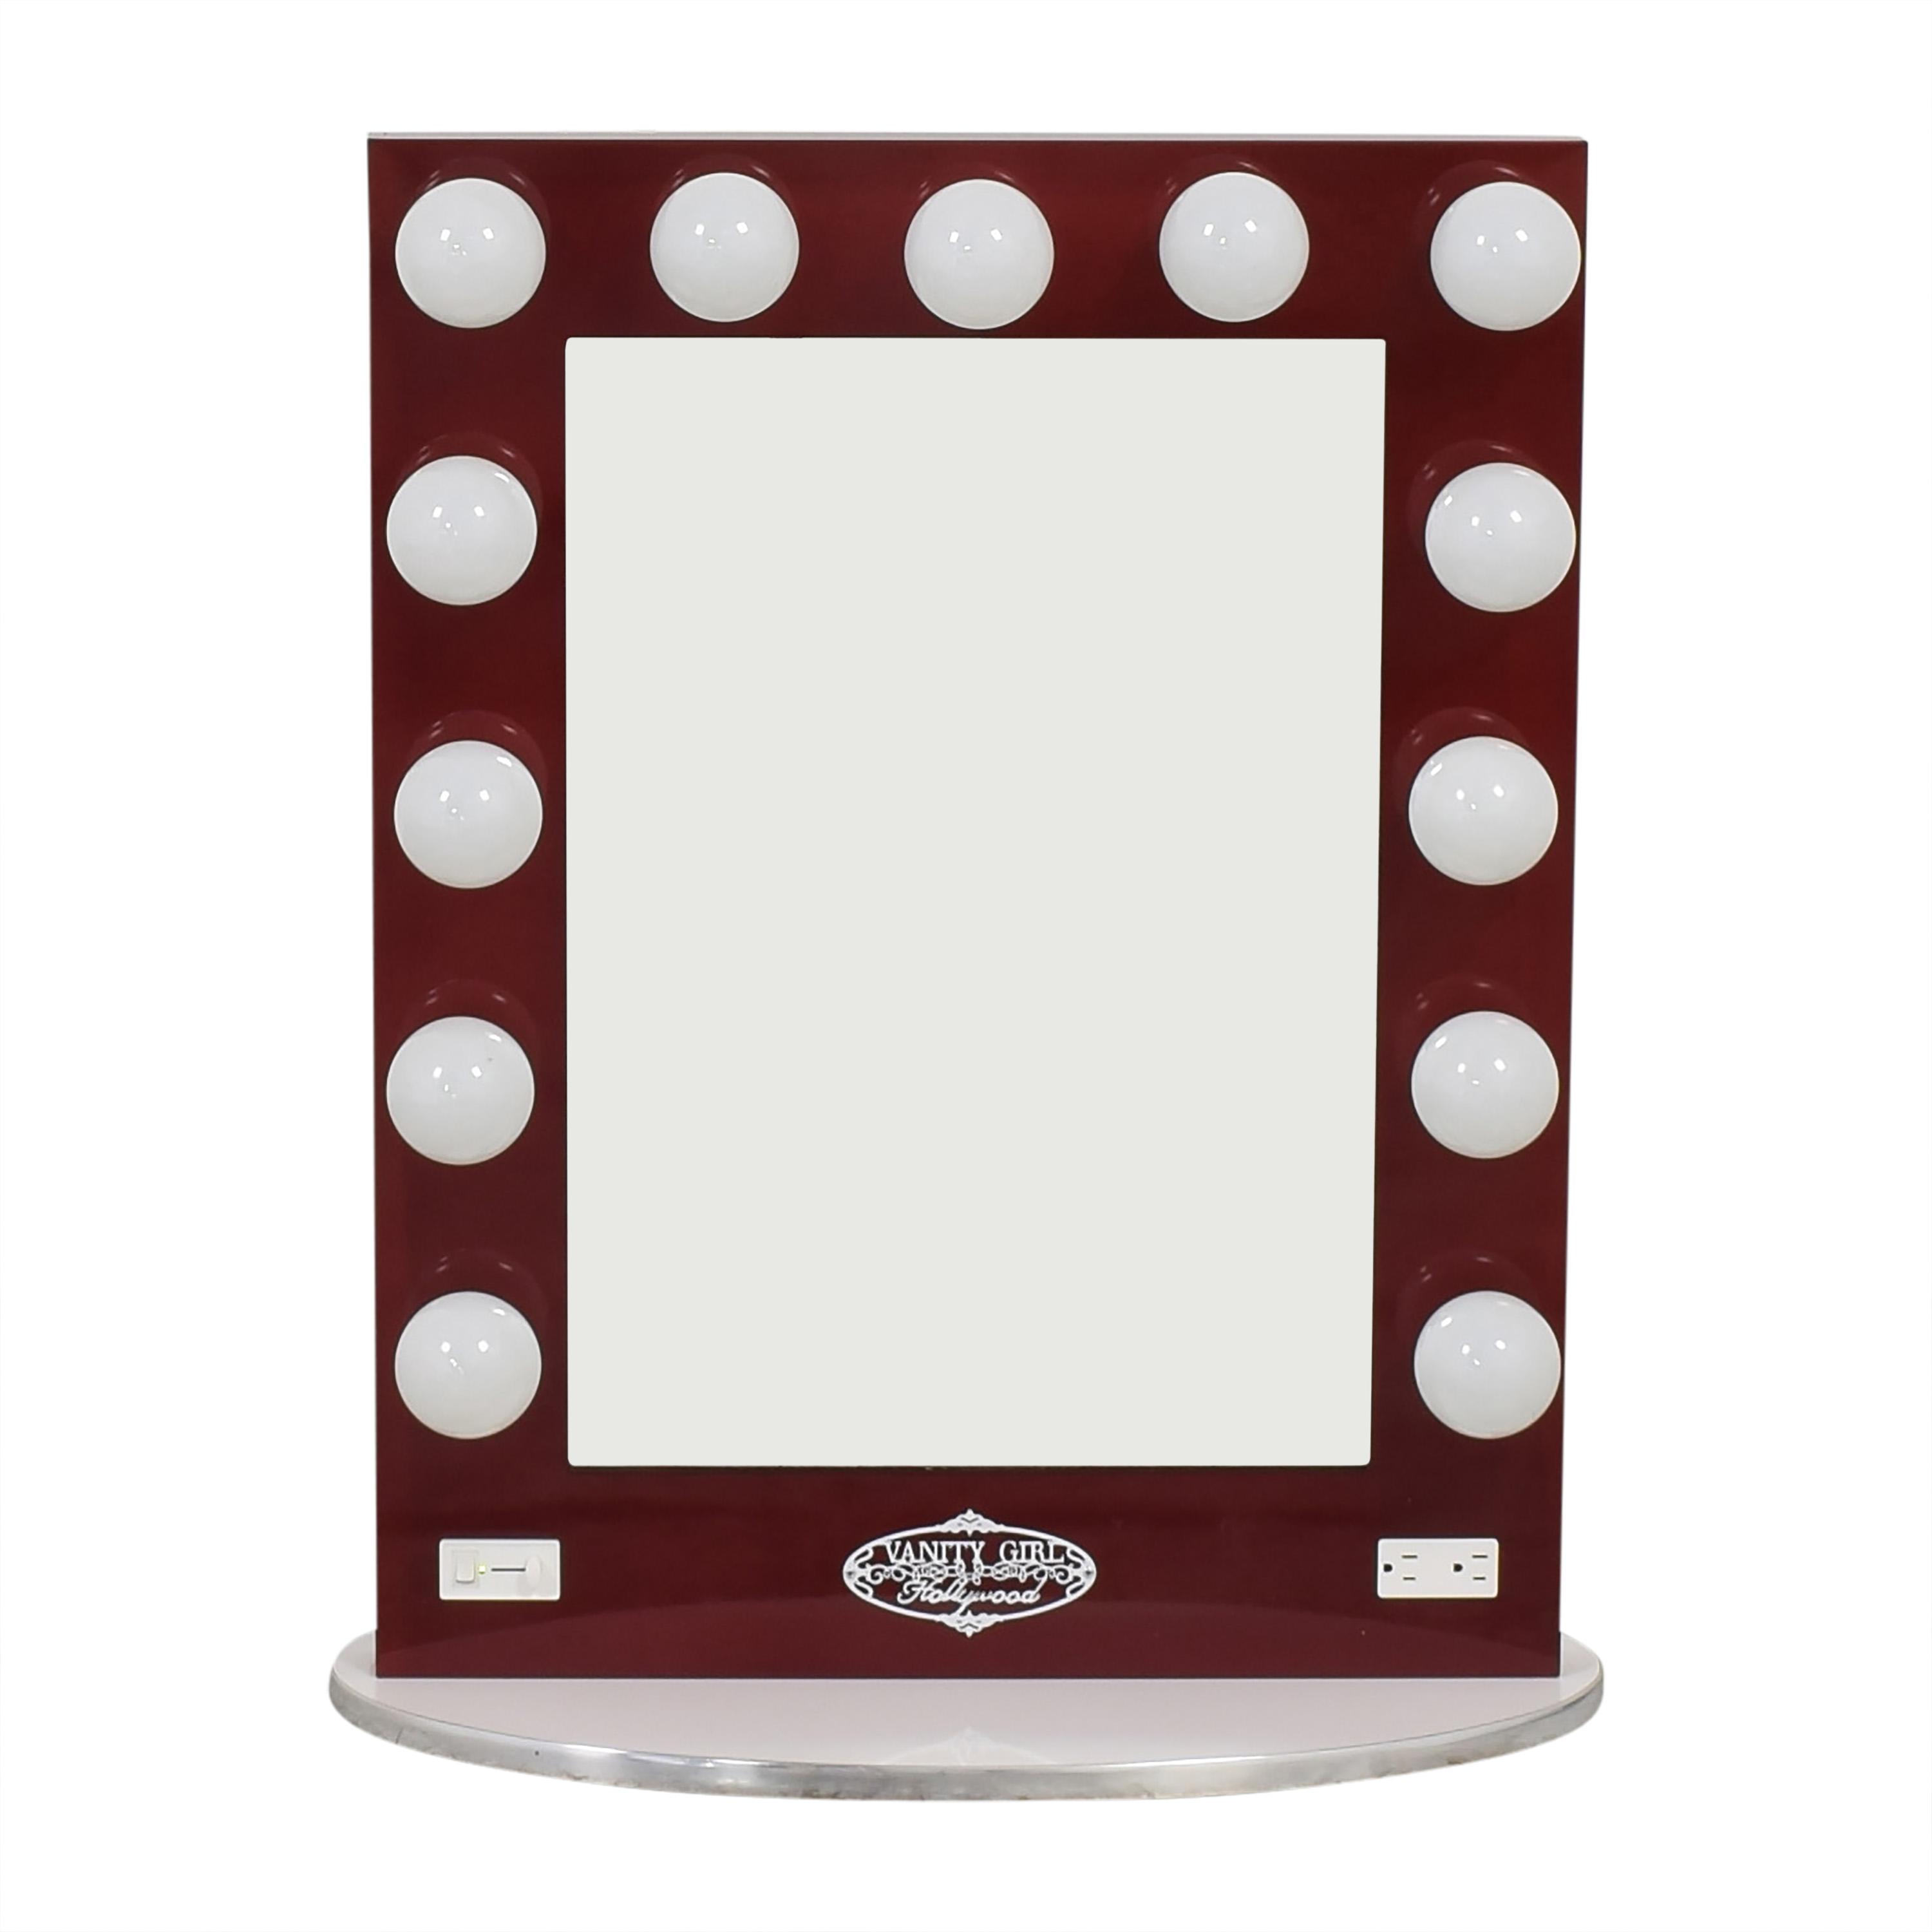 Vanity Girl Hollywood Vanity Girl Hollywood Broadway Lighted Mirror pa